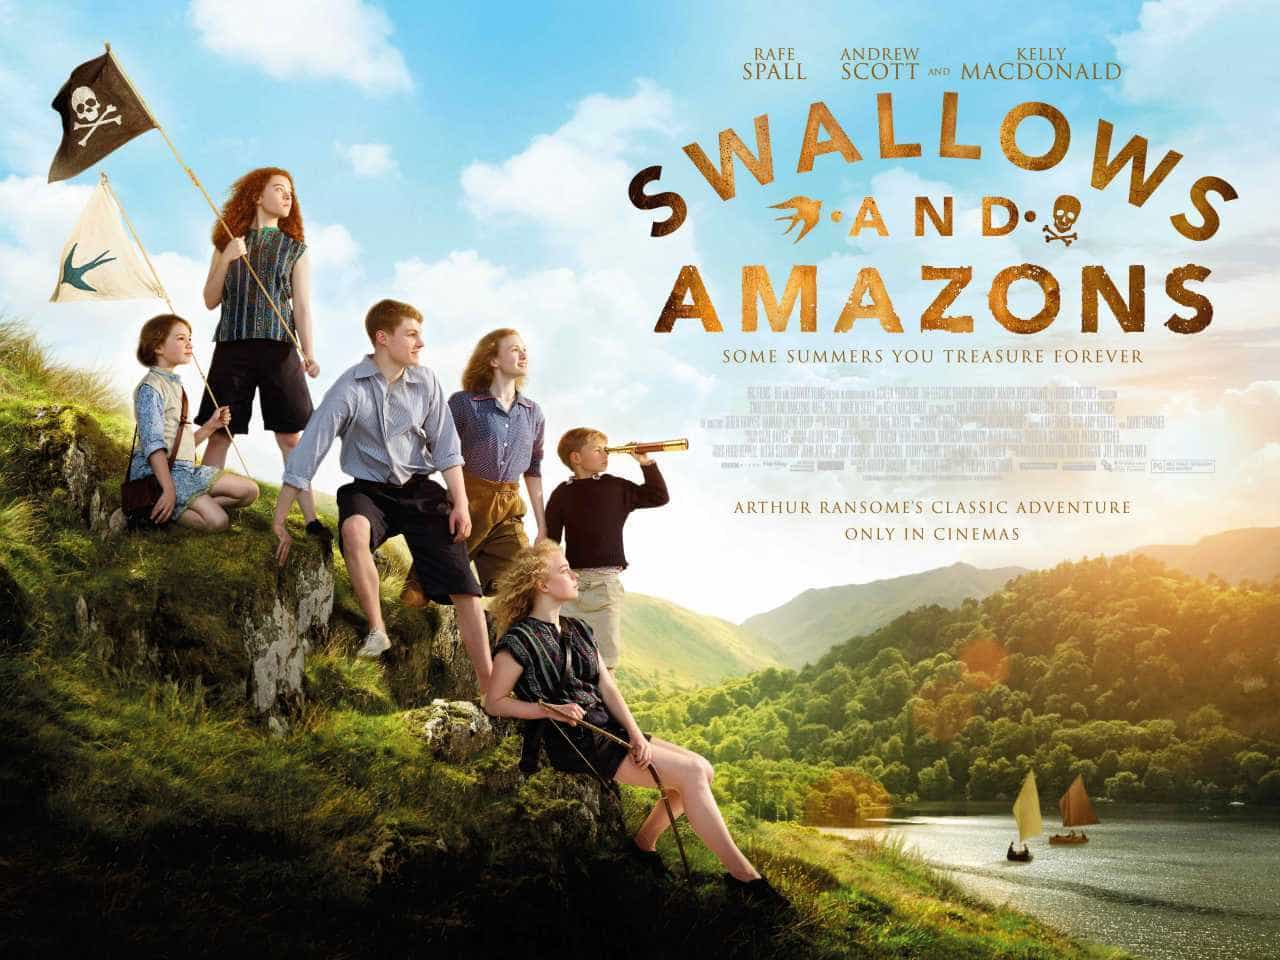 film reviews | movies | features | BRWC The BRWC Review: Swallows And Amazons